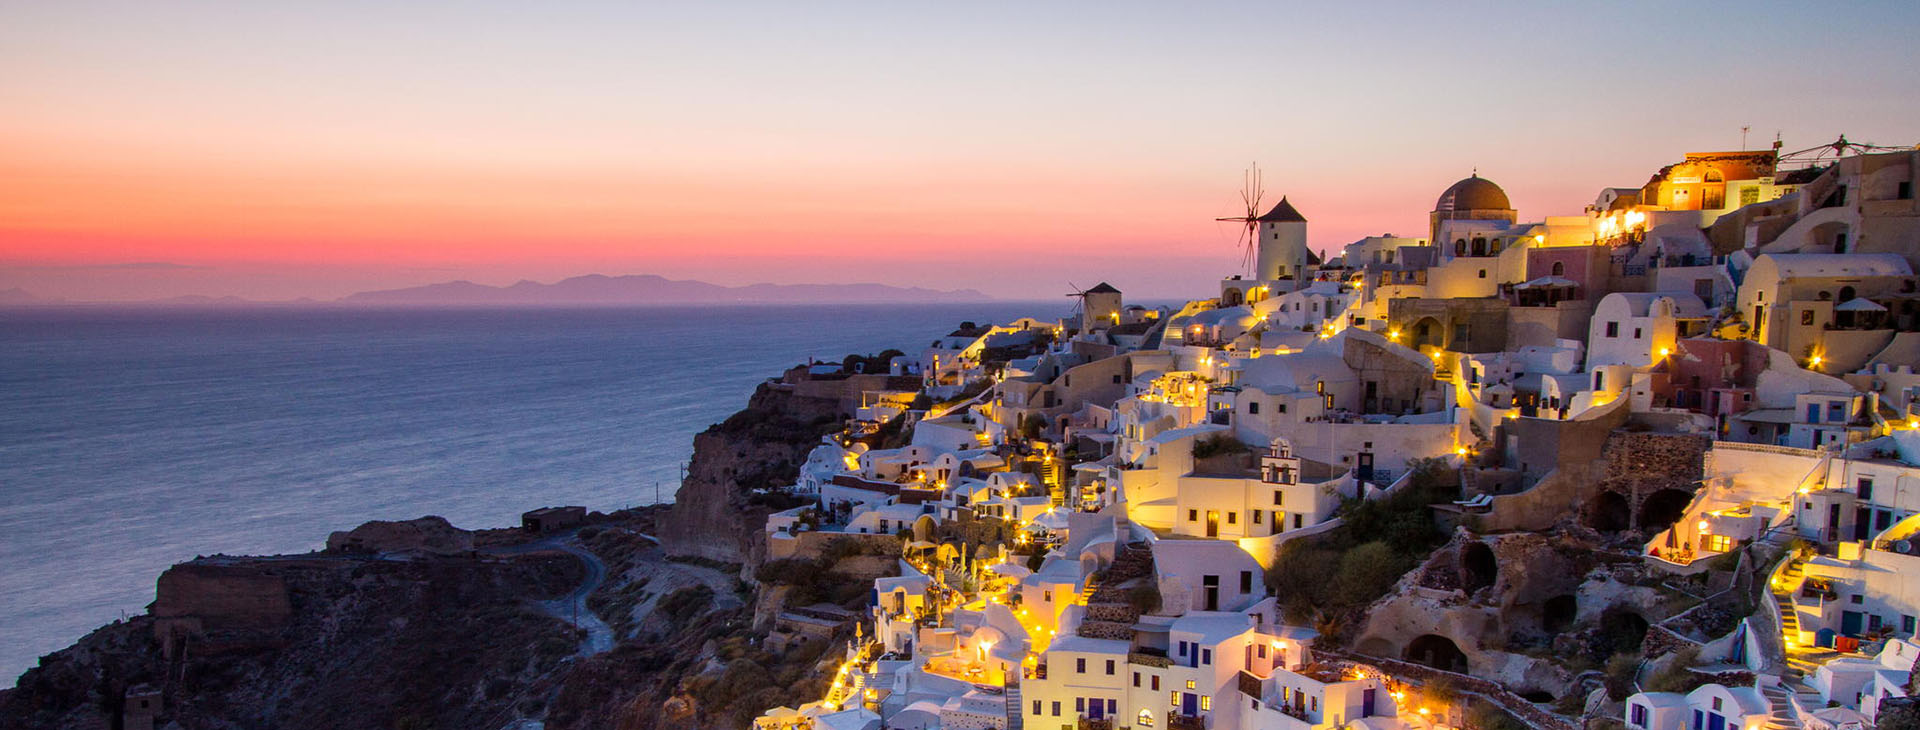 Sunset at Santorini island